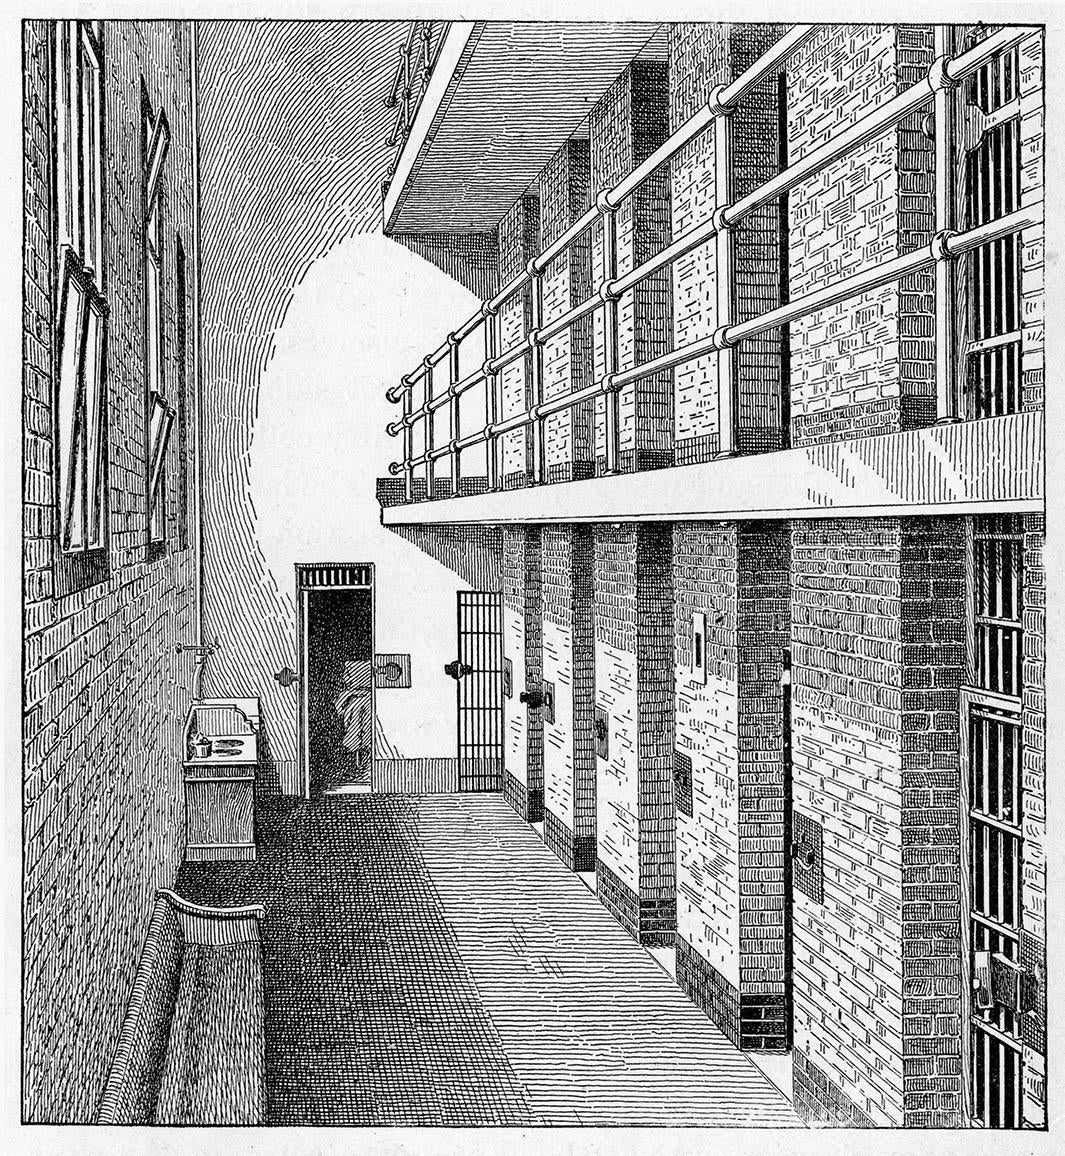 Prison cells for females in The Tombs, New York, late nineteenth century.